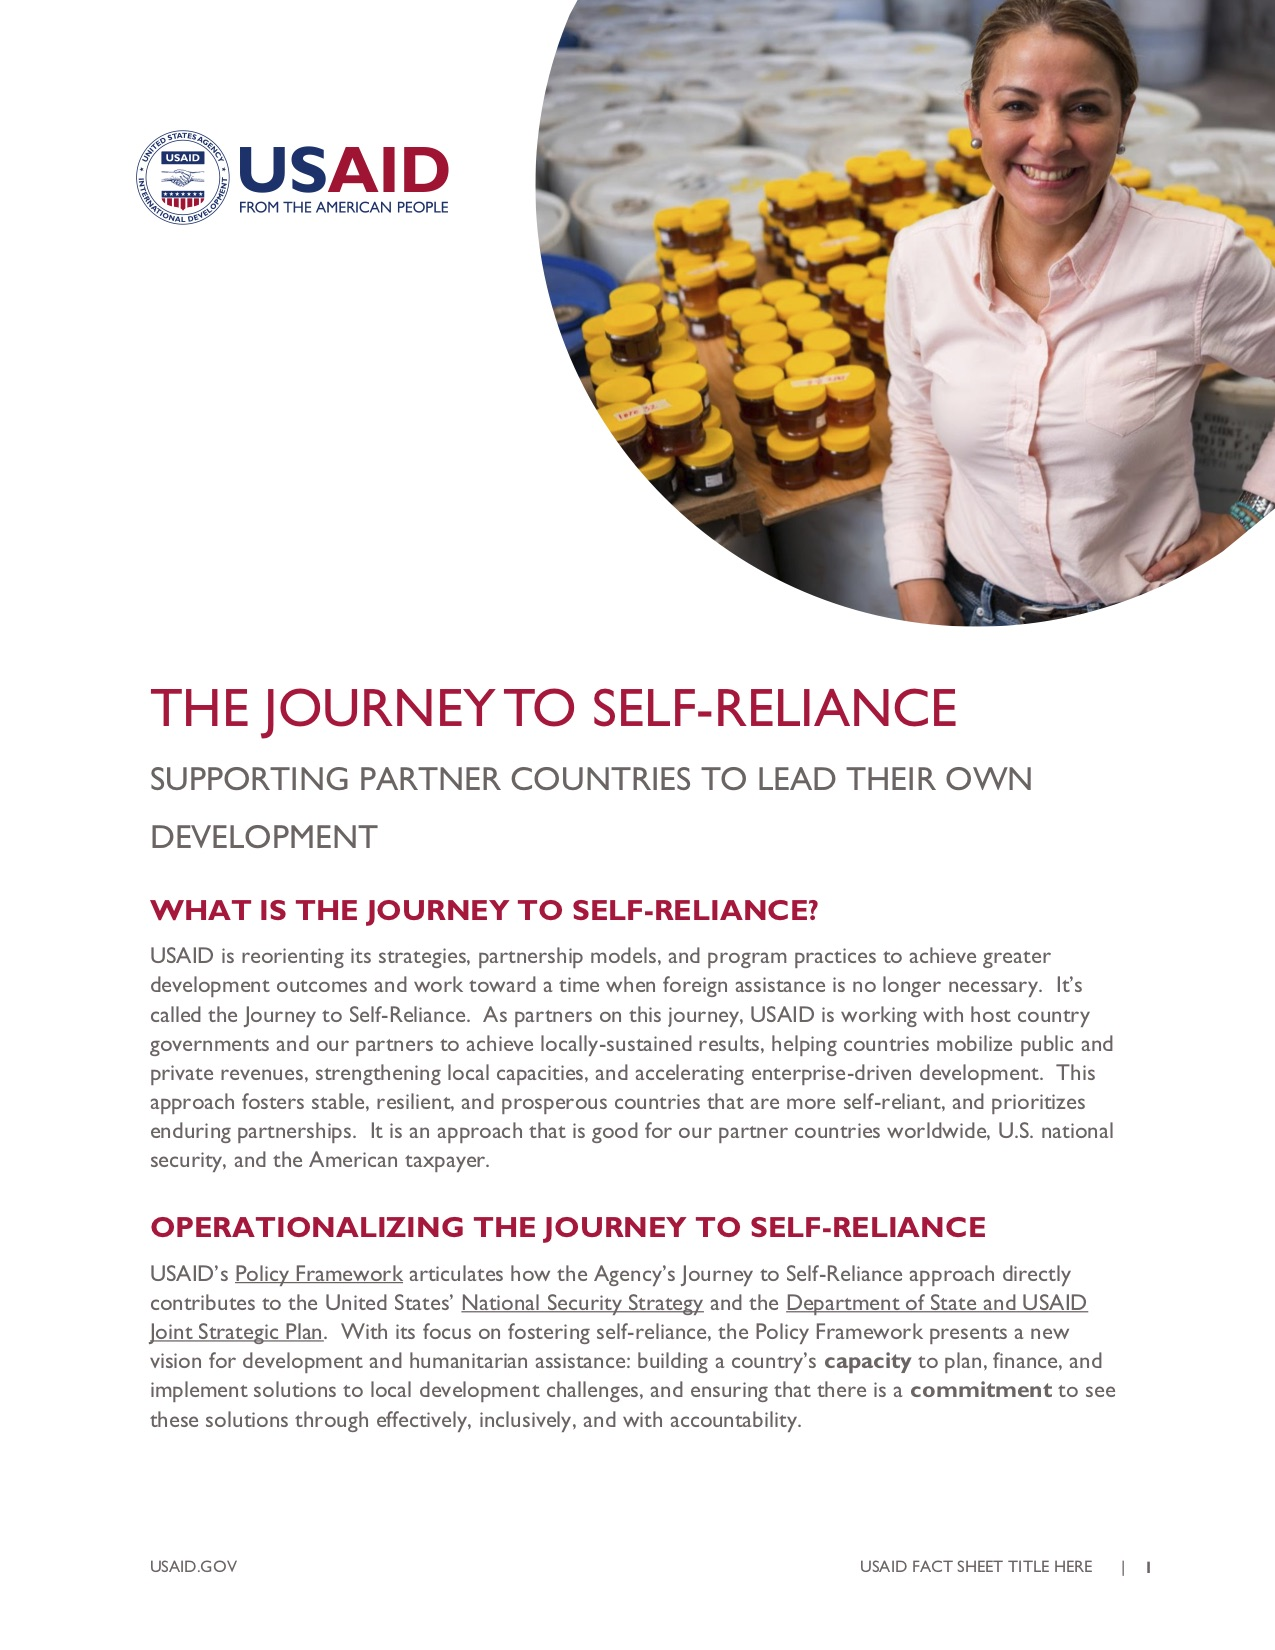 Journey to Self-Reliance Fact Sheet